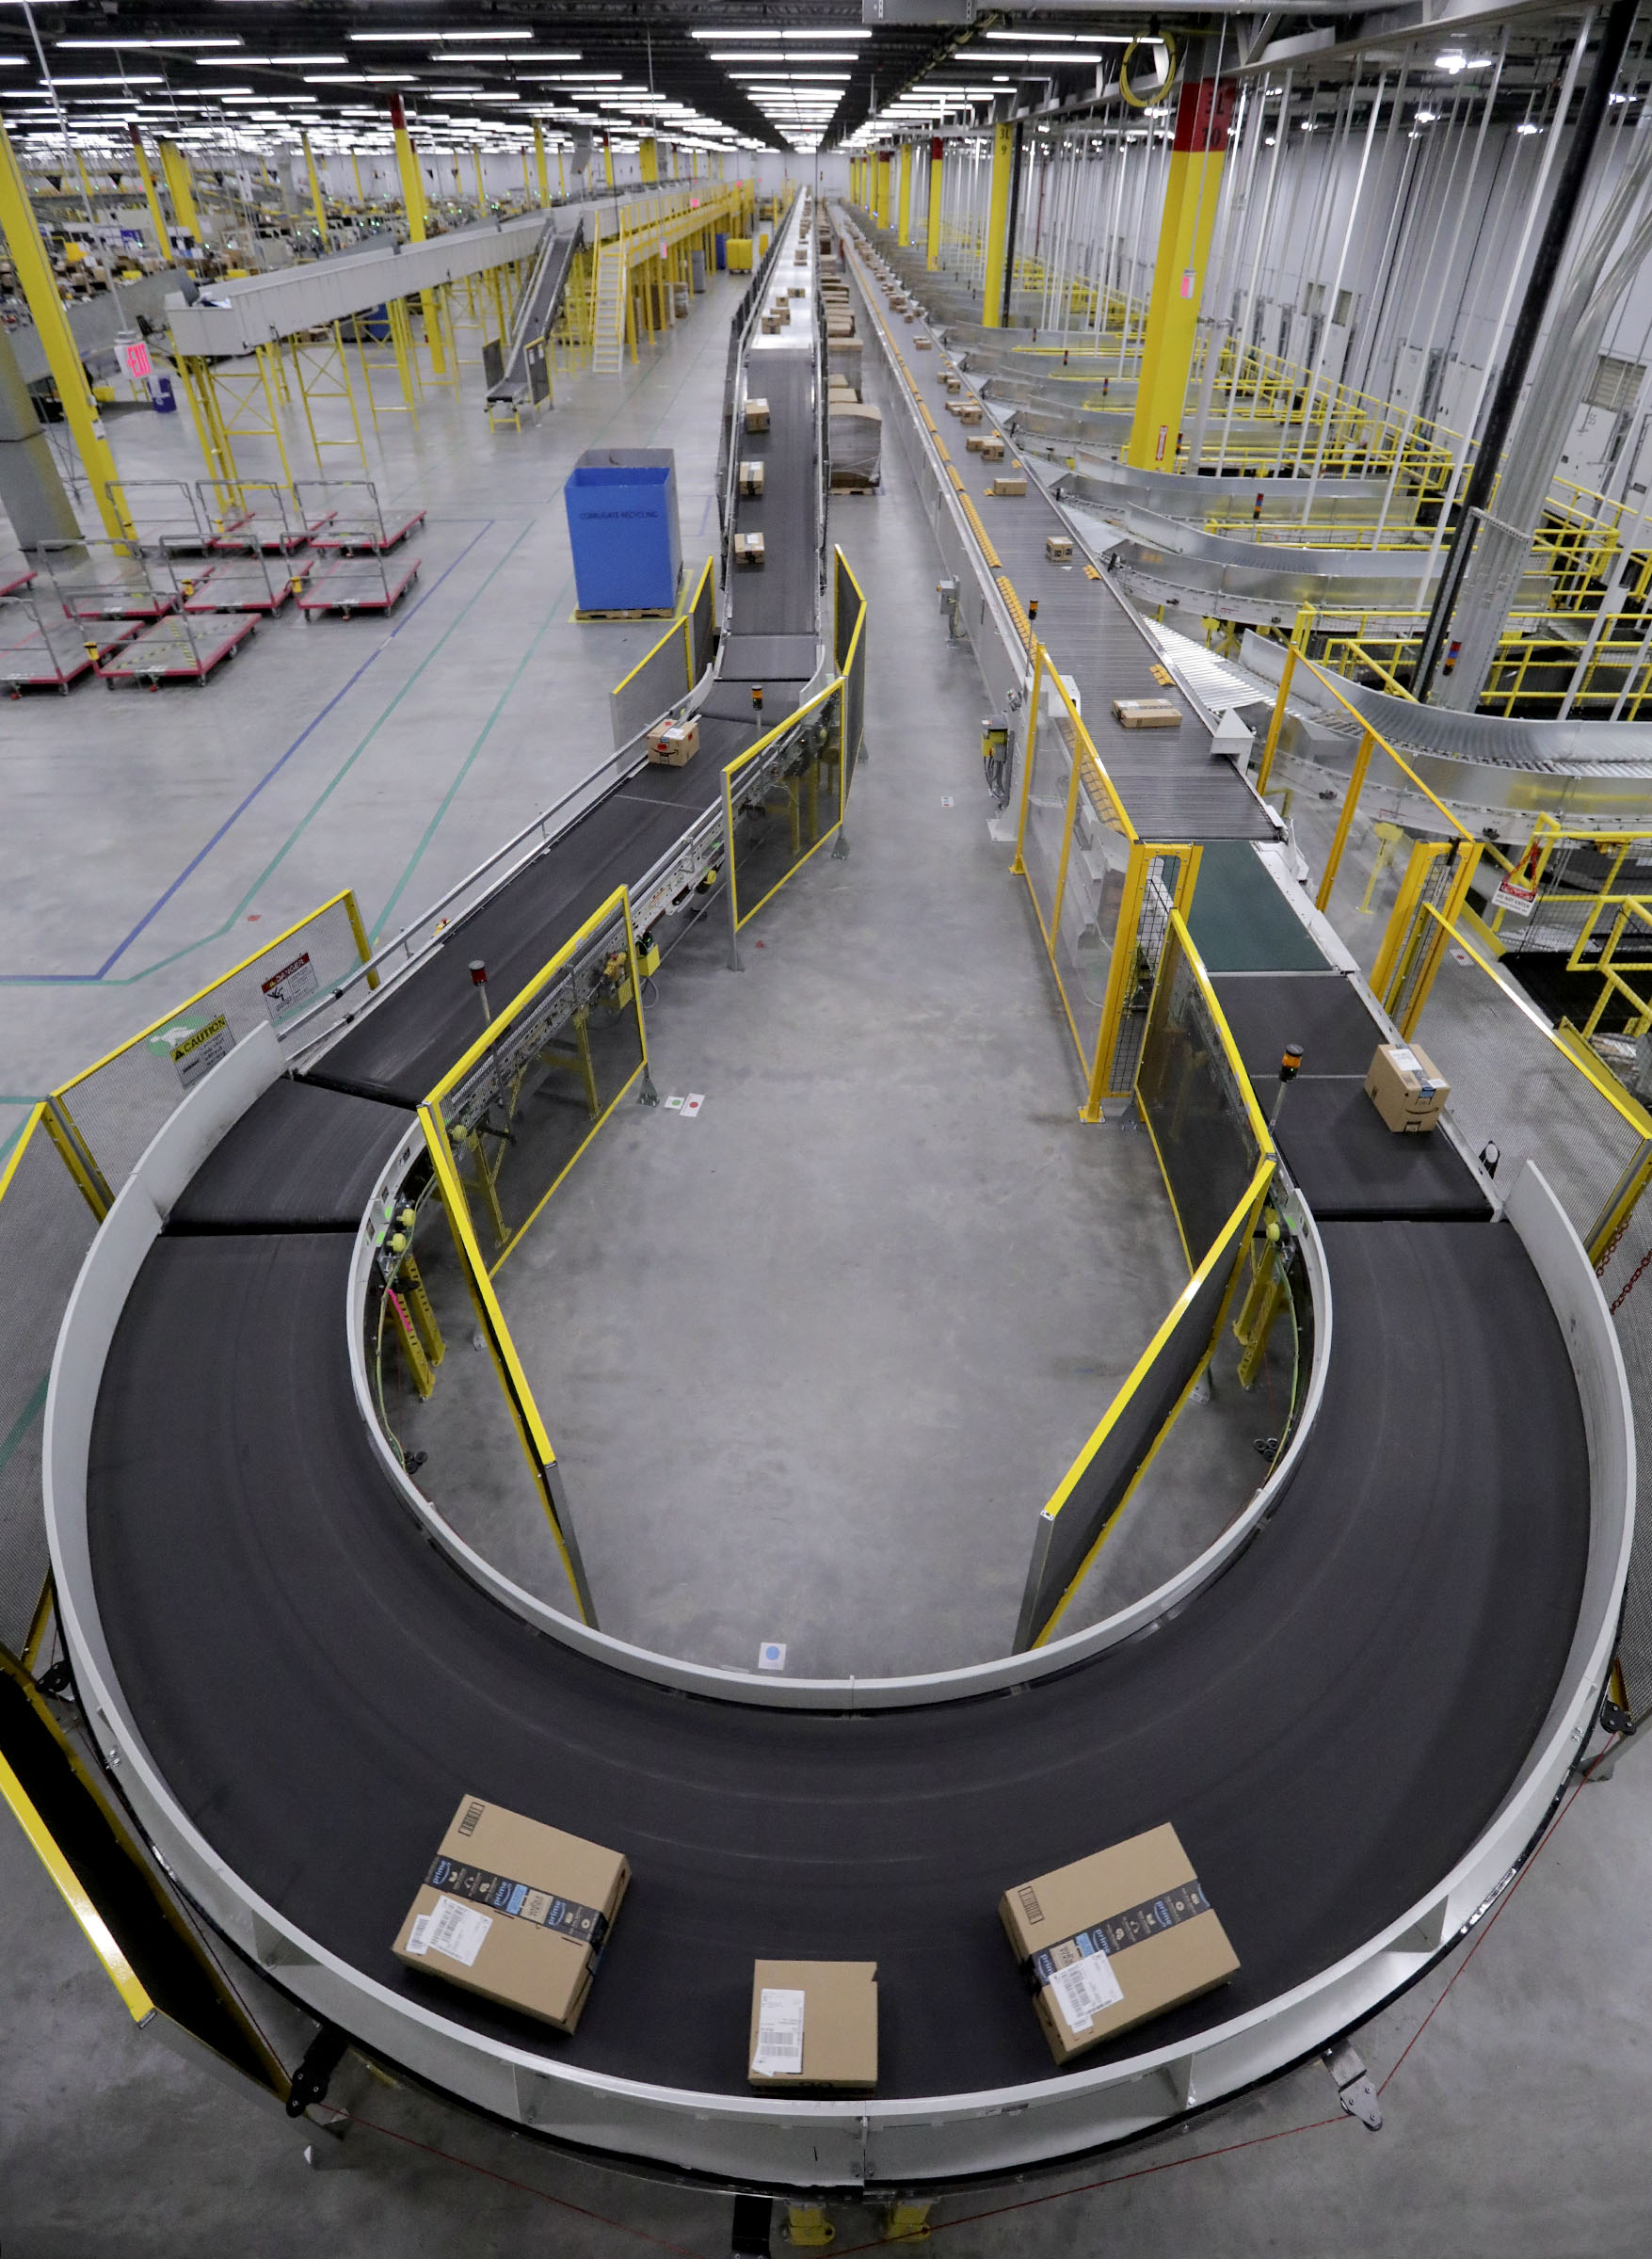 Boxes move through the new Amazon Fulfillment Center in Salt Lake City on Wednesday, April 17, 2019.